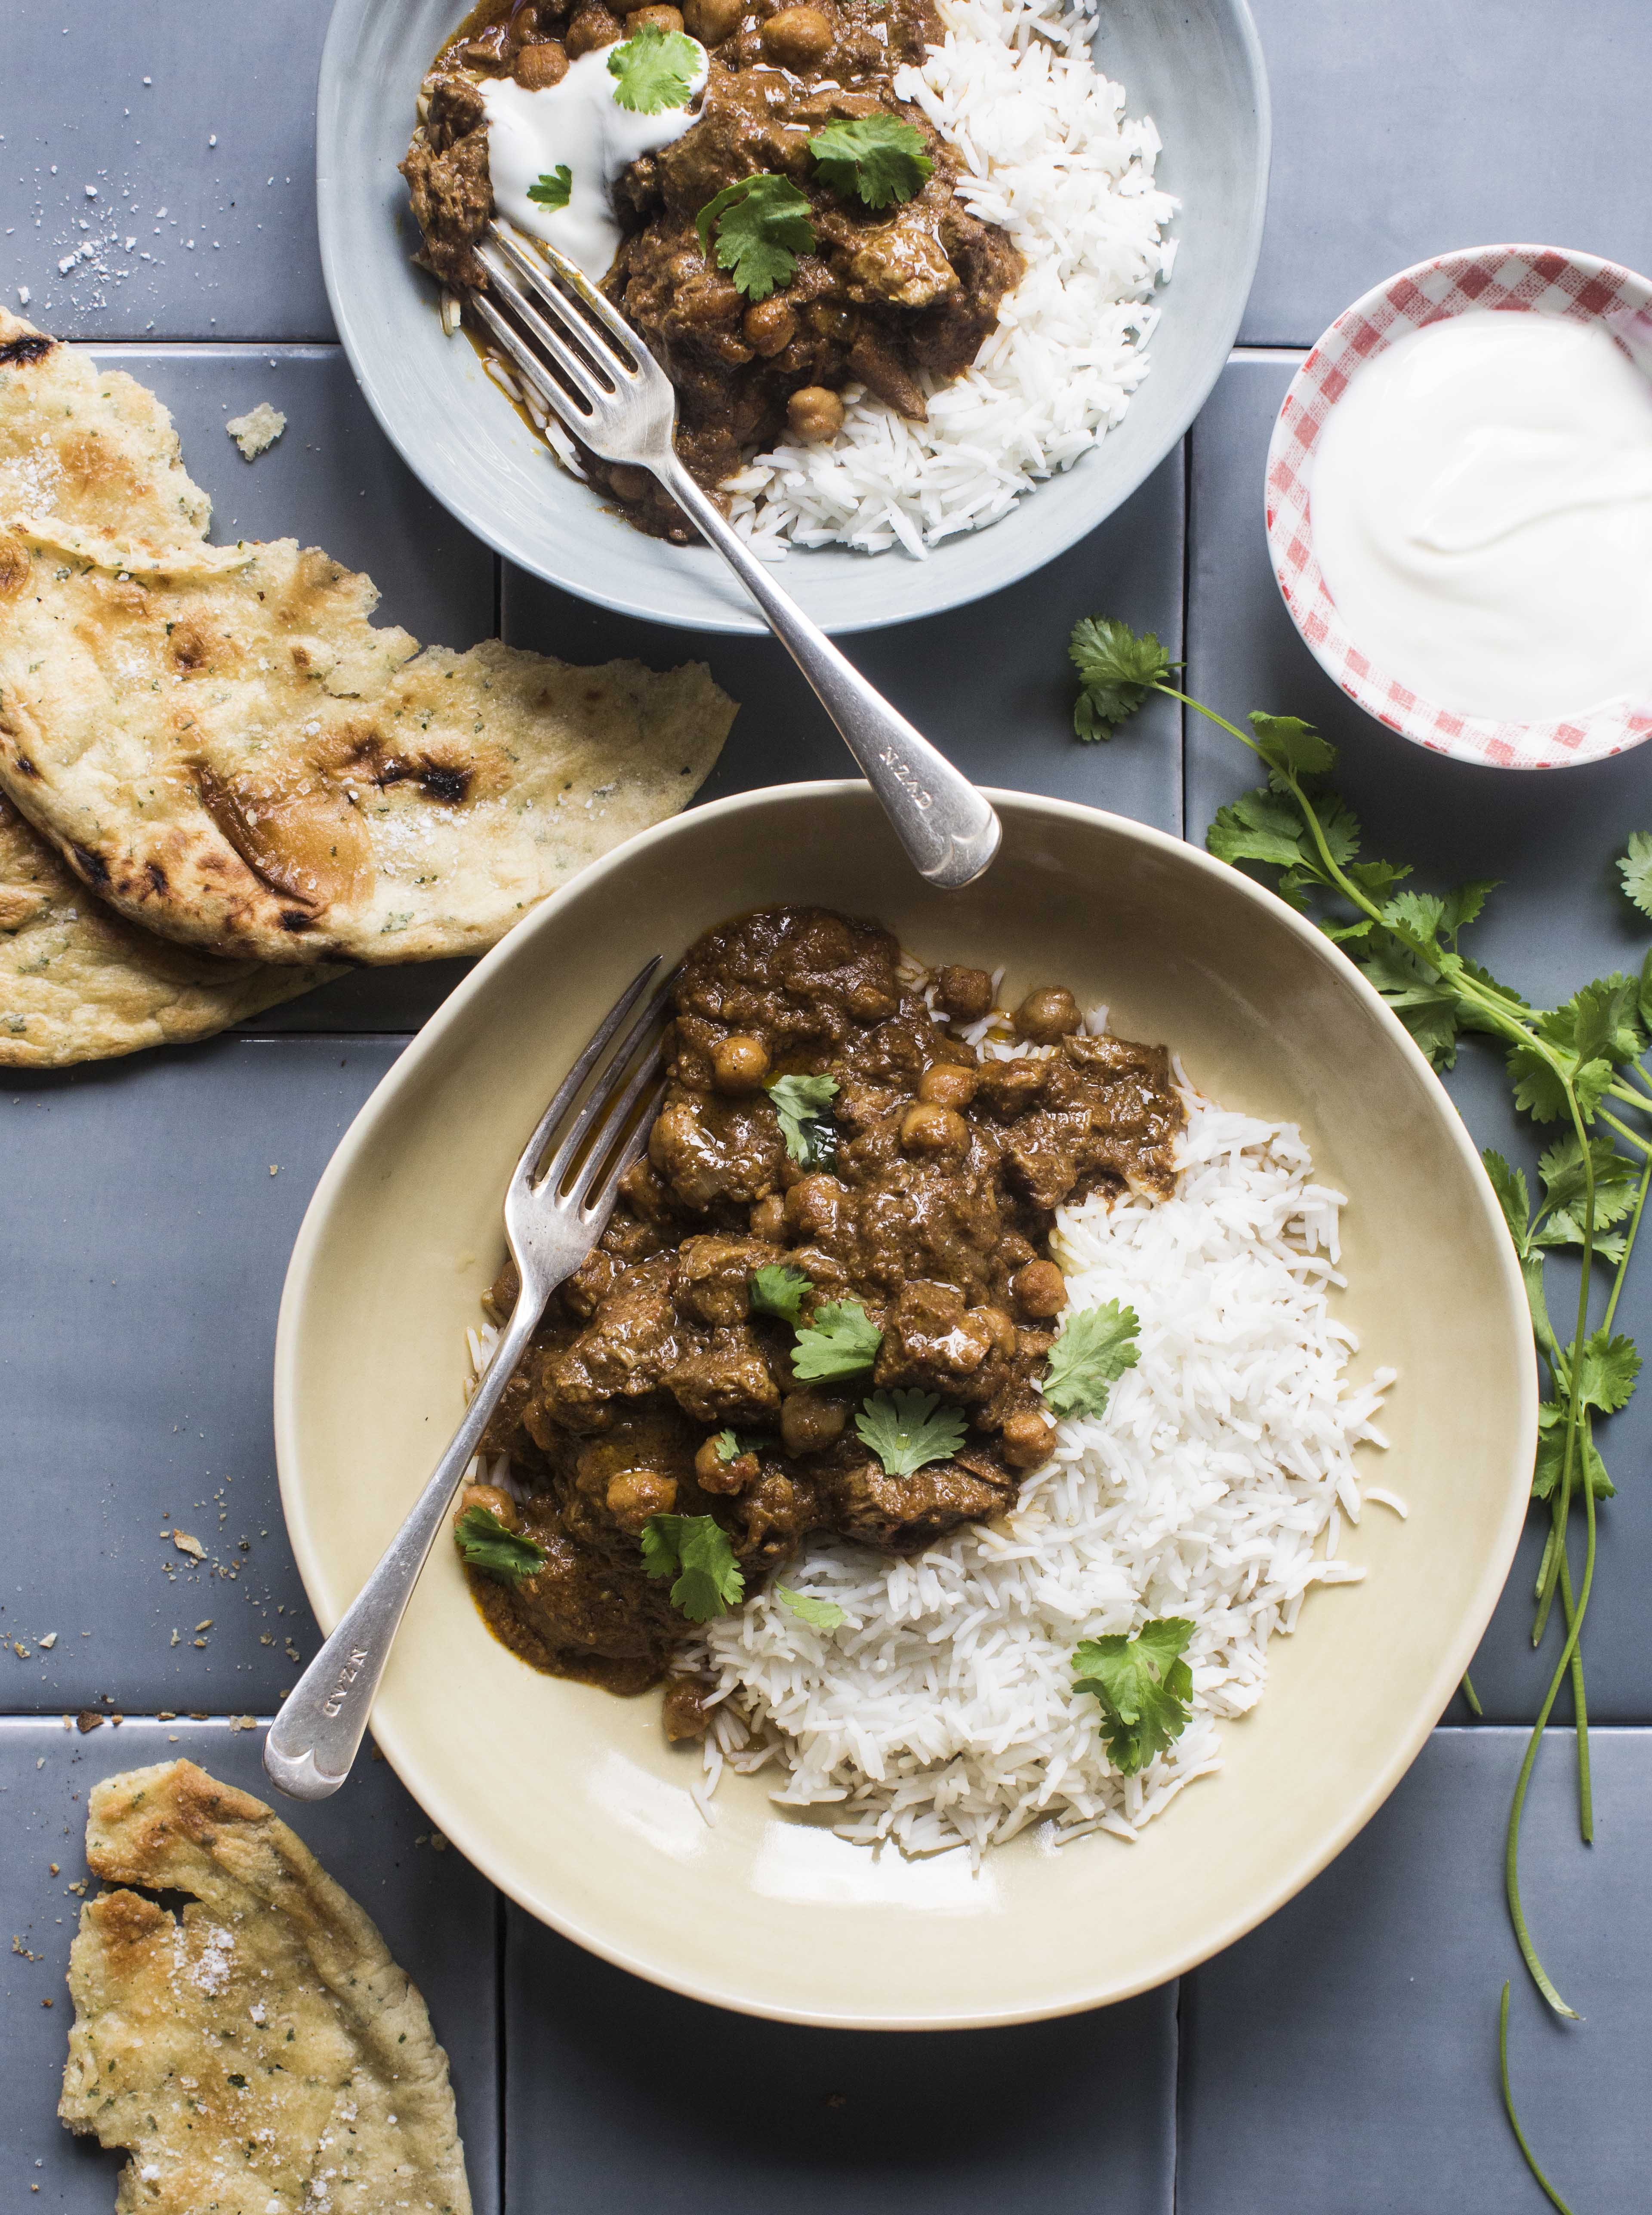 Chelseawinter fragrant indian spiced lamb curry fragrant indian spiced lamb curry with chickpeas forumfinder Gallery